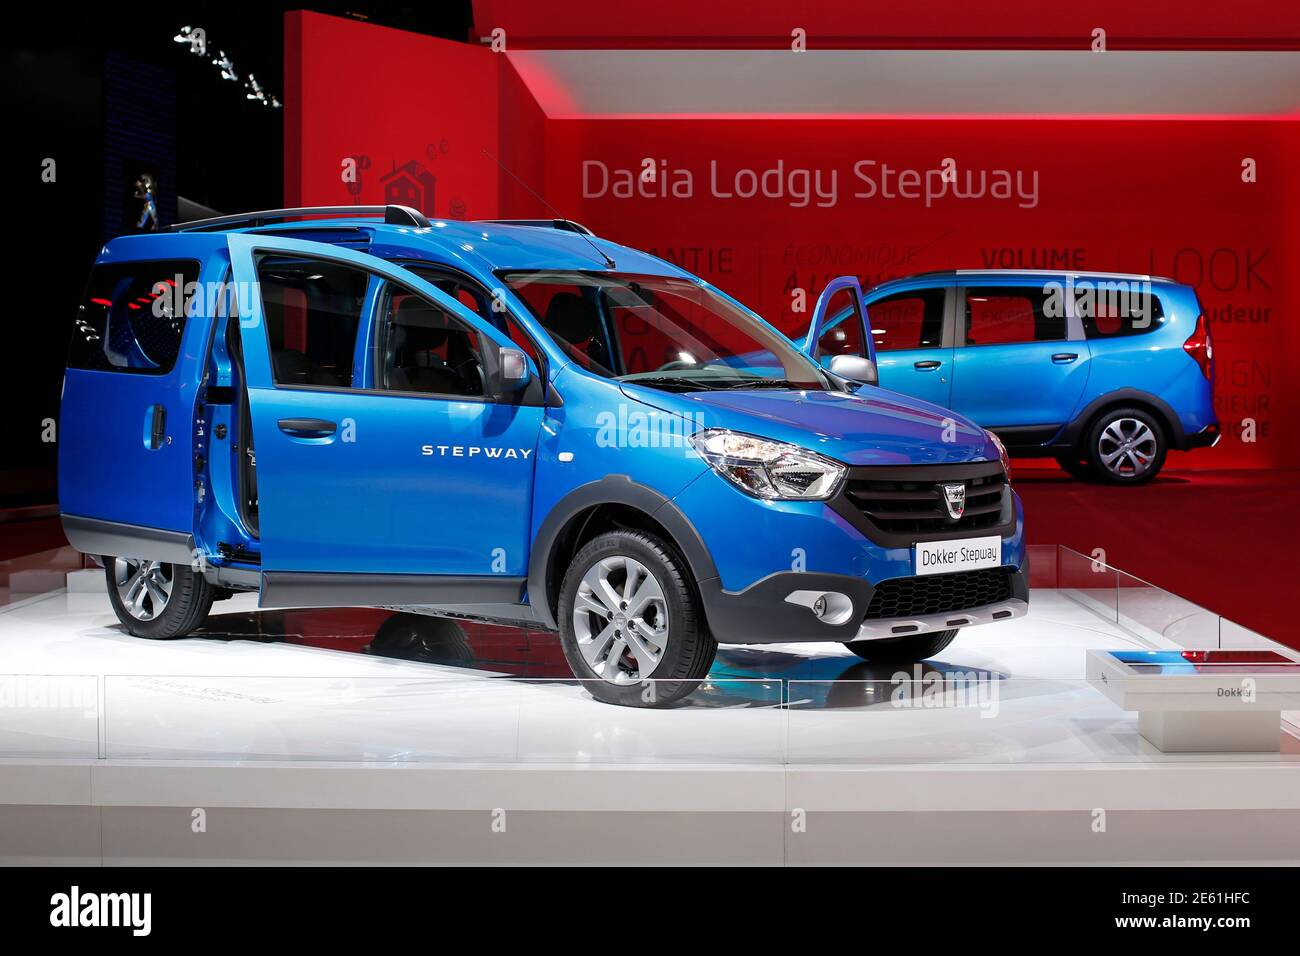 https www alamy com the dacia dokker stepway is displayed on media day at the paris mondial de lautomobile october 2 2014 the paris auto show opens its doors to the public from october 4 to october 19 reutersbenoit tessier france tags transport business image399562112 html